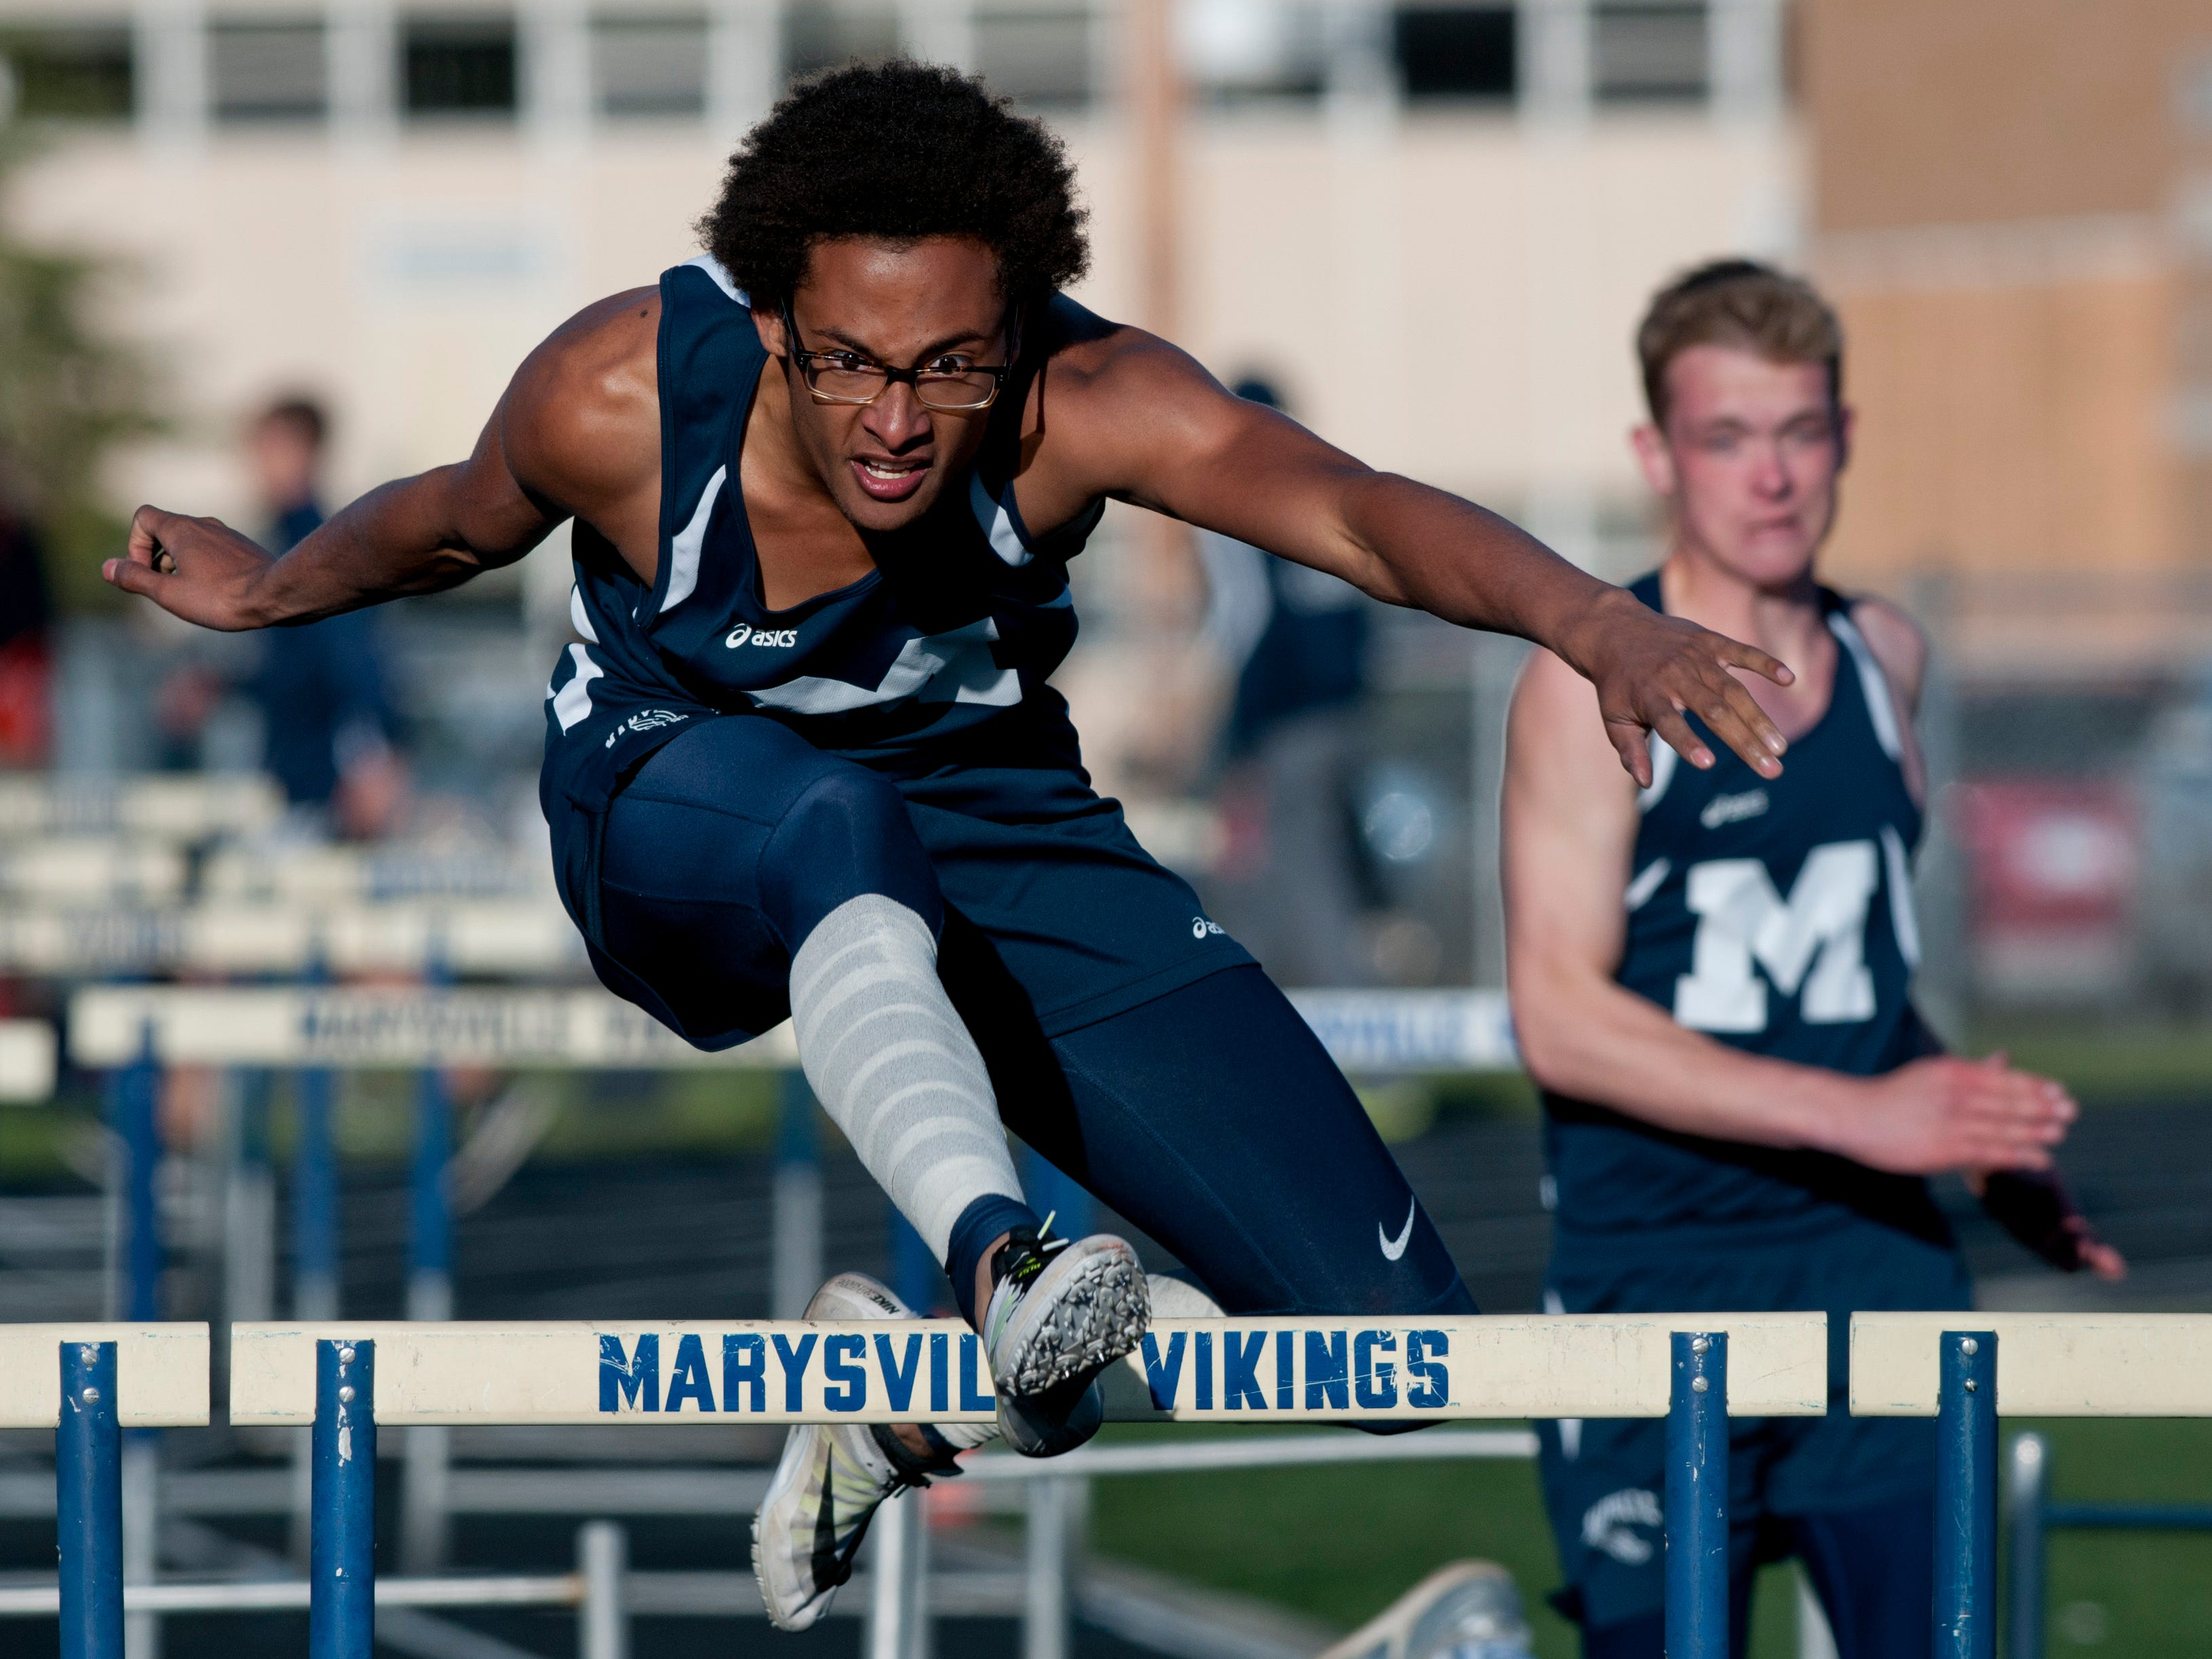 Marysville senior Dylan Pankow competes in the hurdles during the Meet of Champions Friday, May 22, 2015 at Marysville High School.